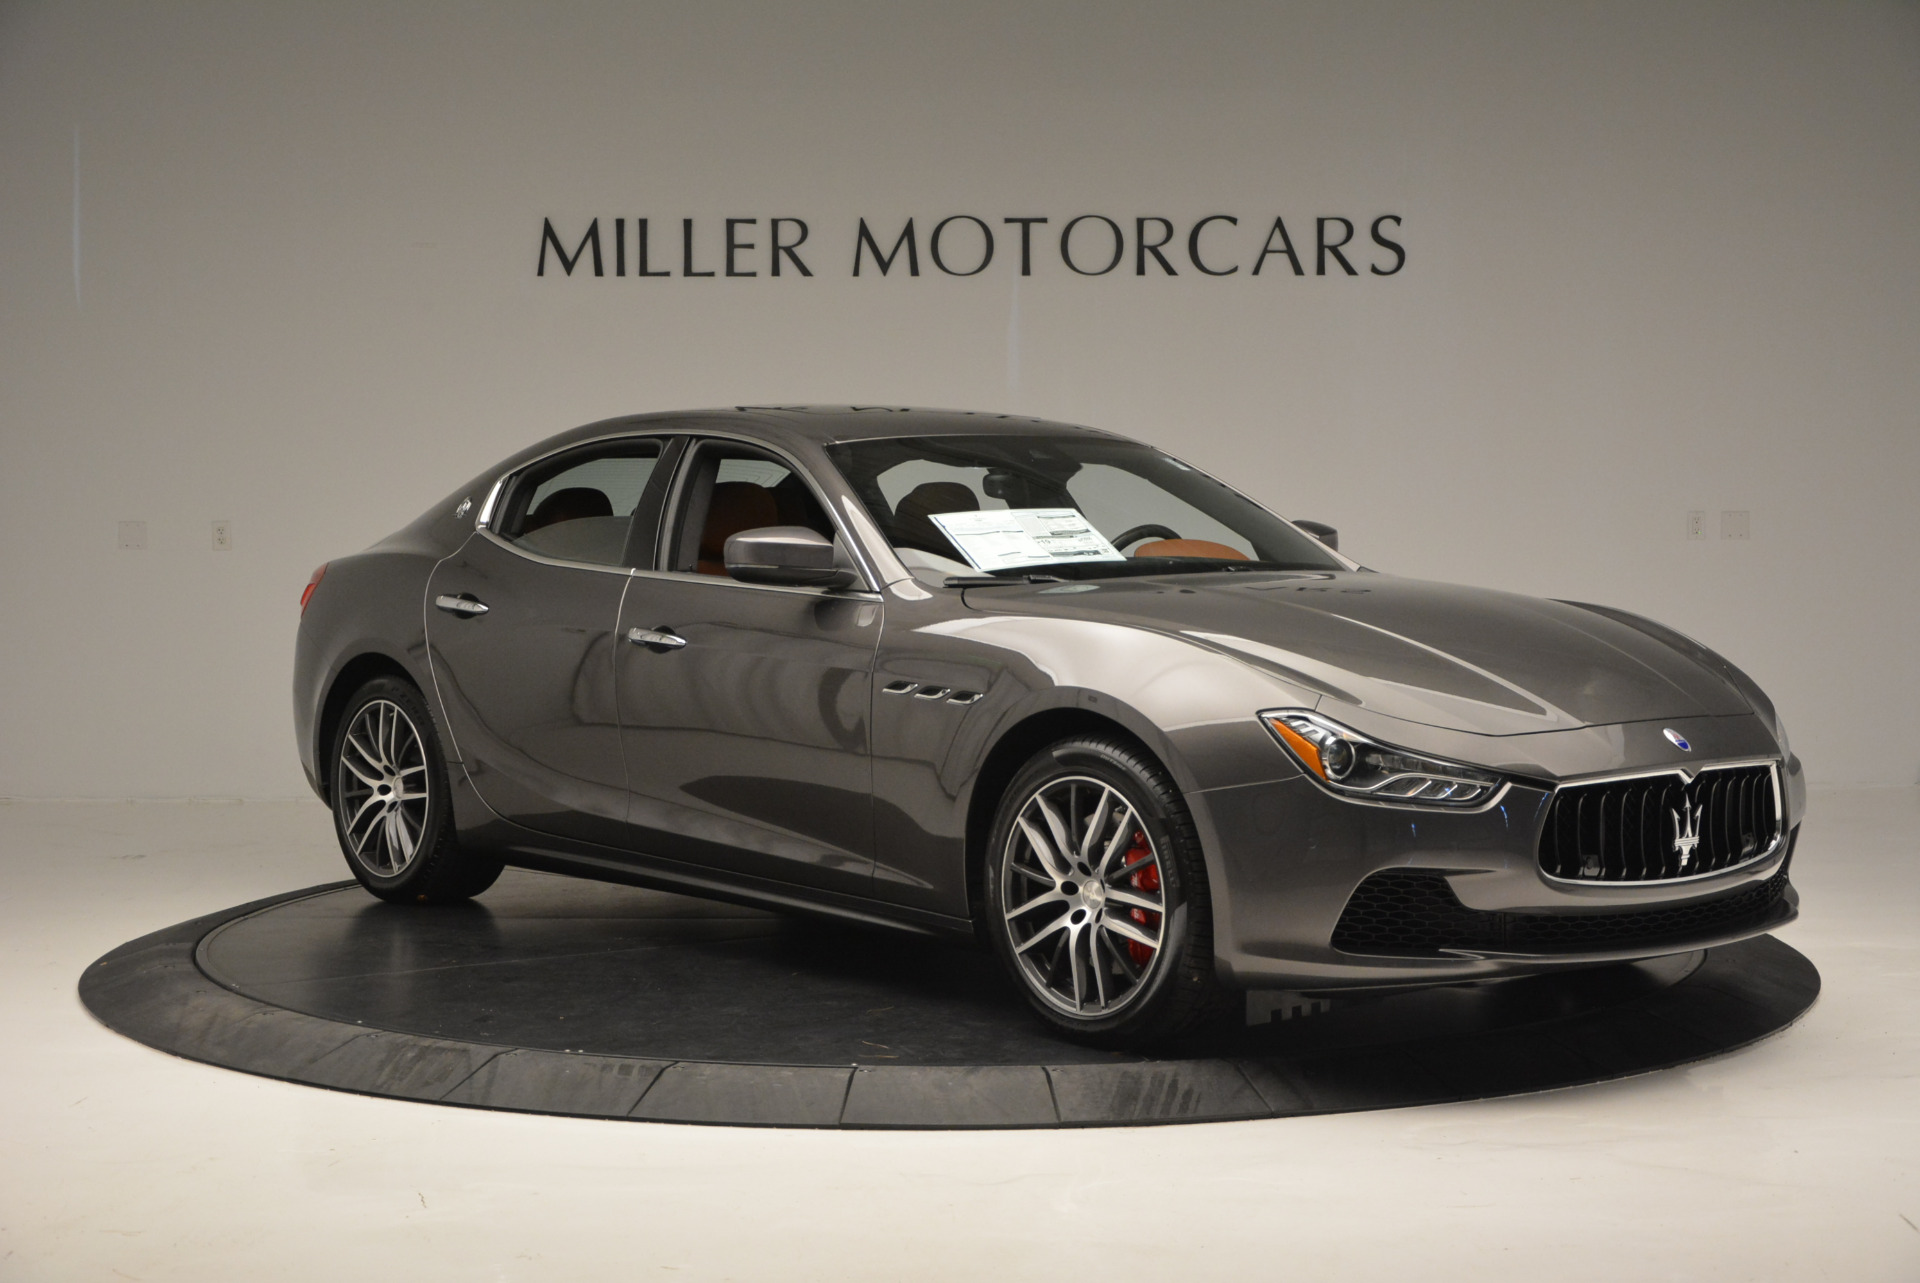 New 2017 Maserati Ghibli S Q4 For Sale In Greenwich, CT 573_p11